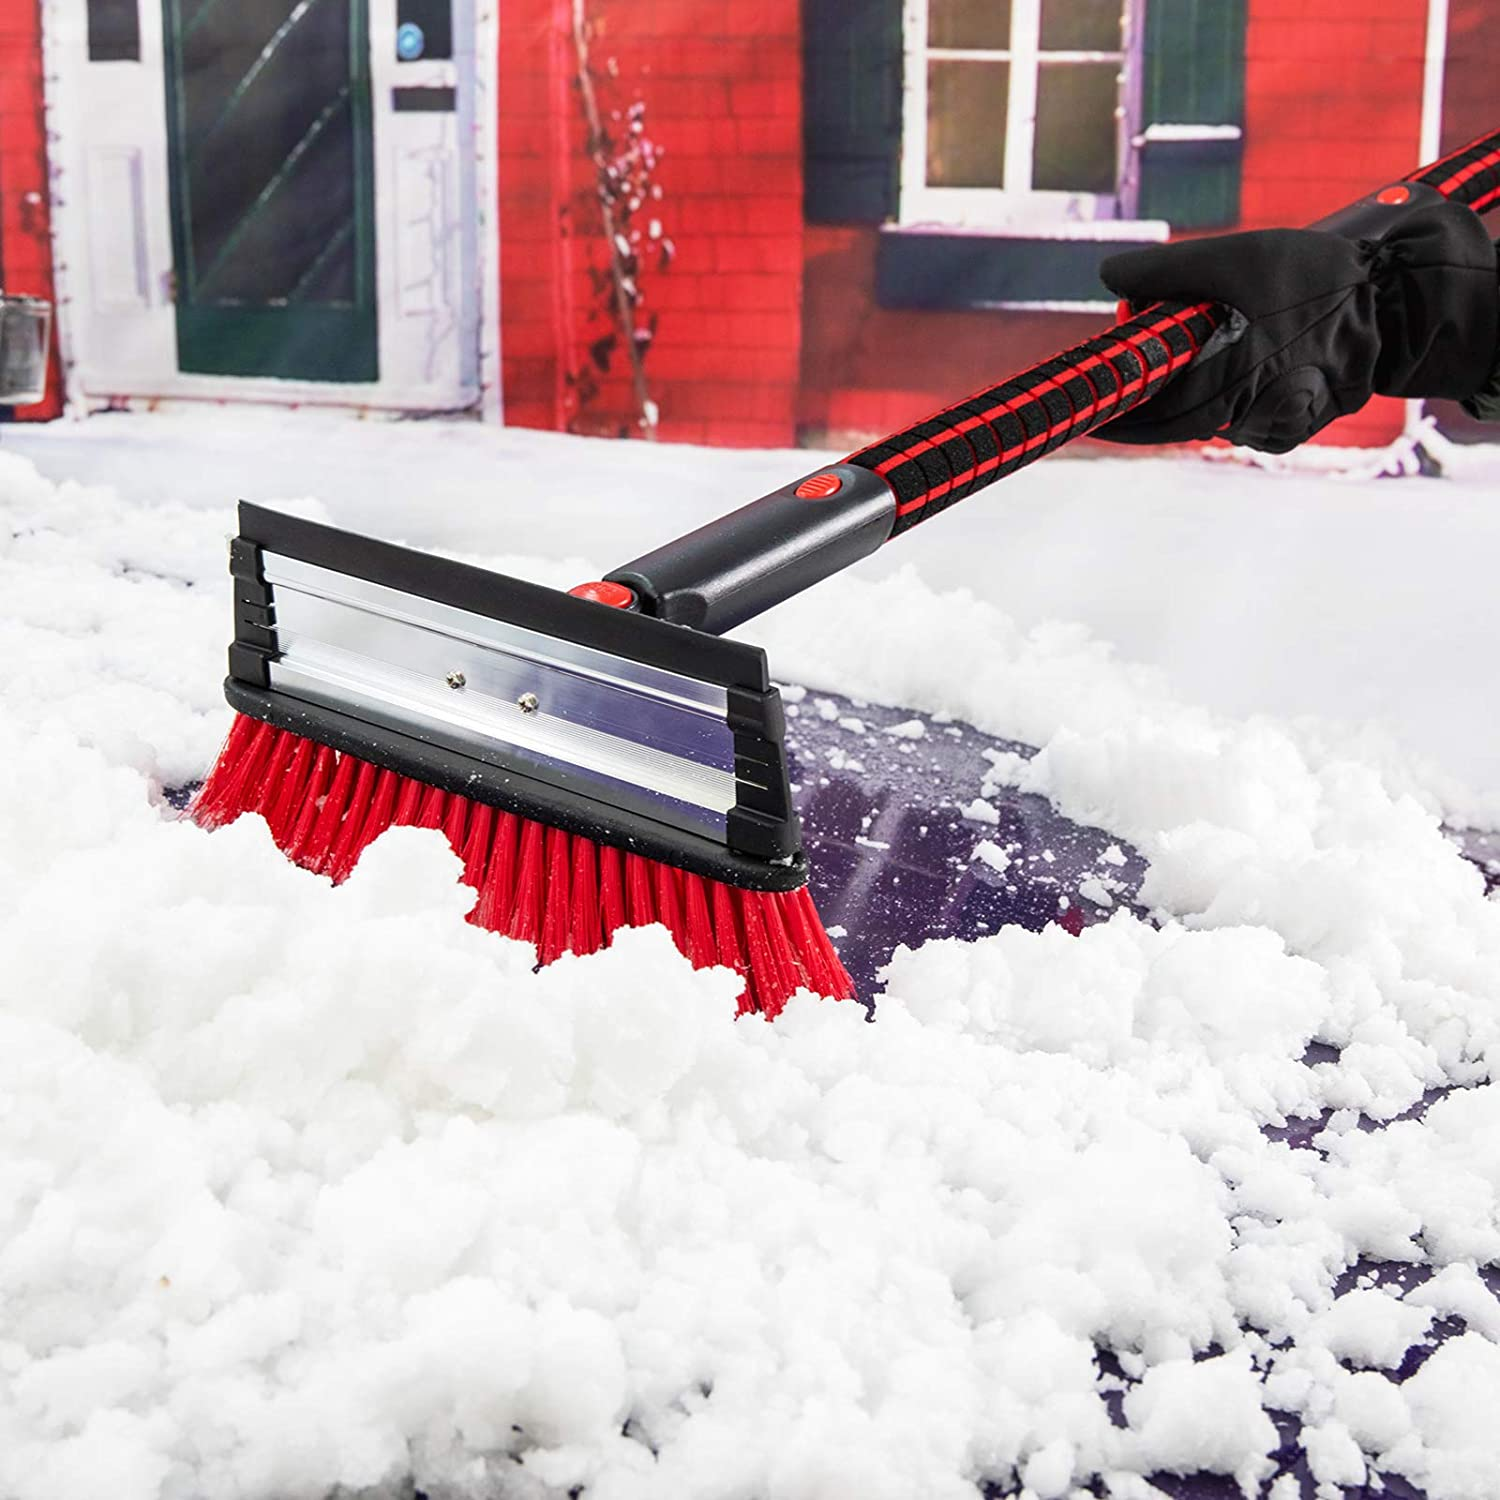 COFIT 2 in 1 Detachable Car Snow Brush with Ice Scraper Small Car Brush Auto Snow Removal with Foam Grip for Small Car Auto Windshield Windows 26in